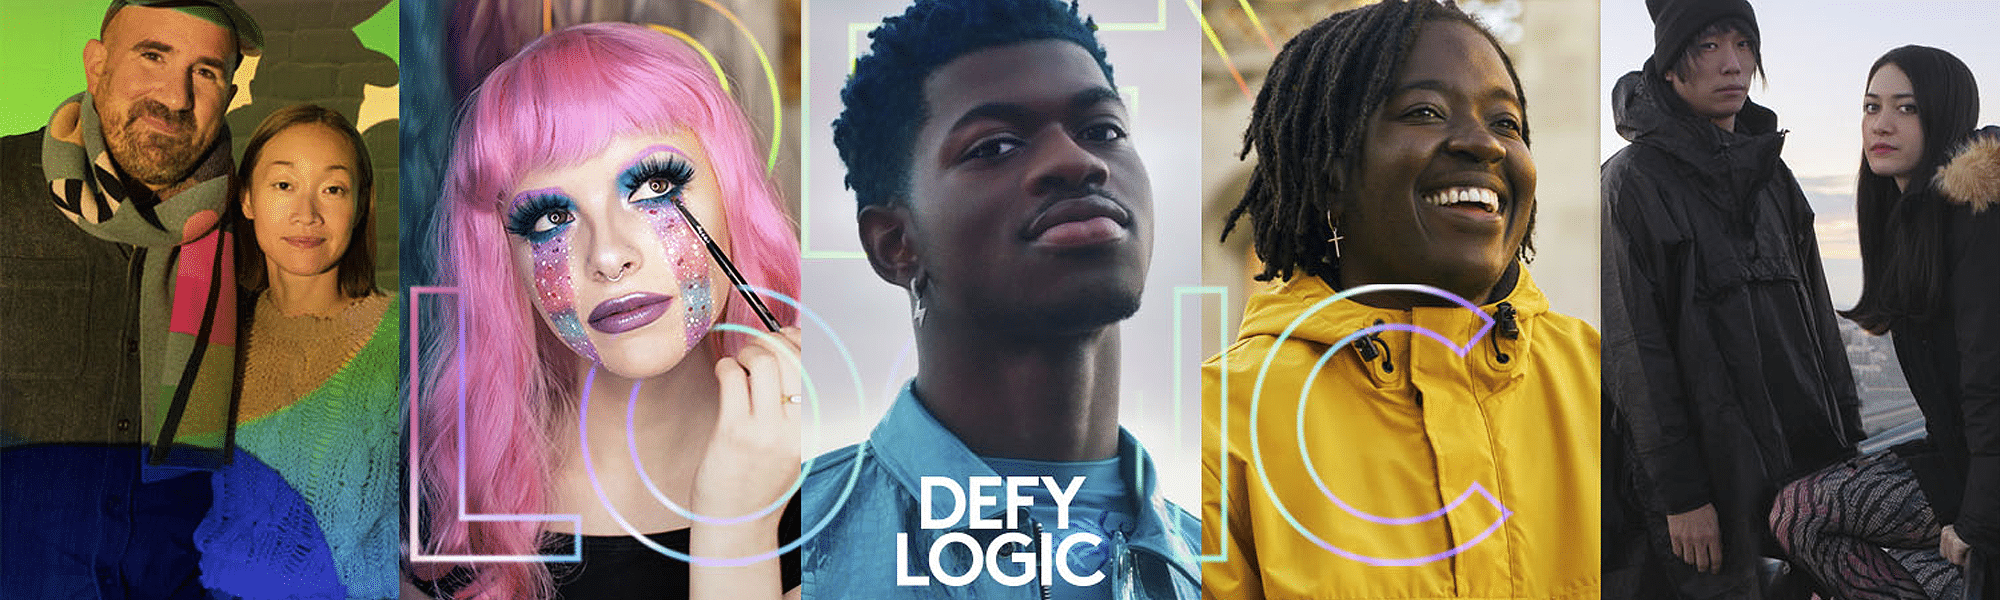 Logitech Launches 'Defy Logic' Campaign With Game Day Ad